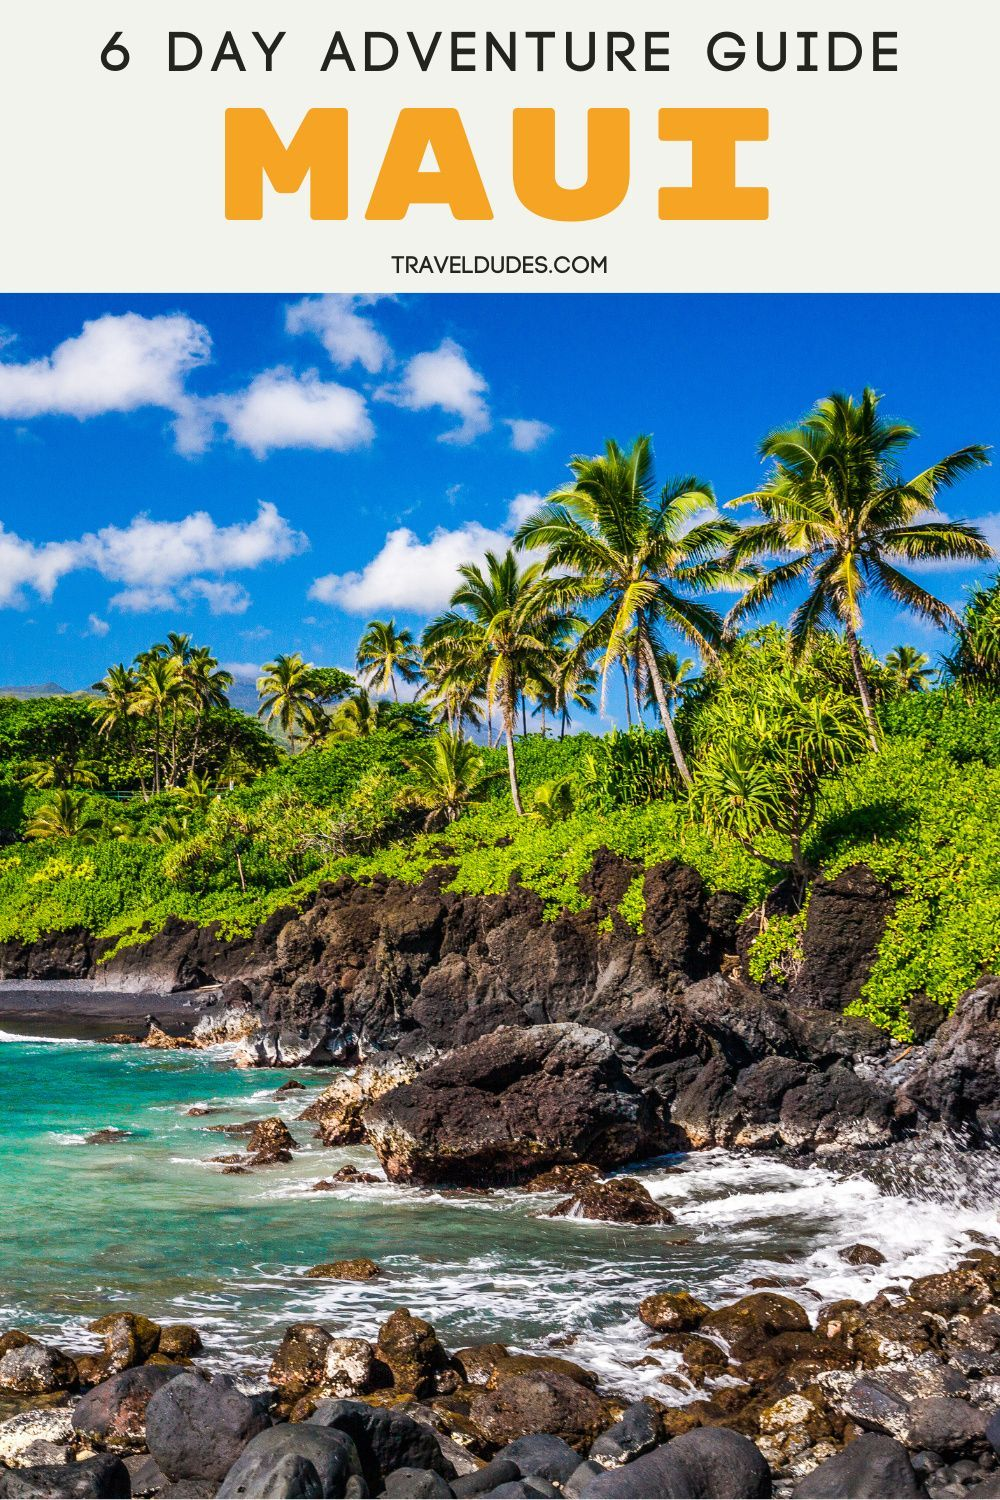 6 Day Adventure Itinerary For Maui Hawaii Travel Dudes In 2021 Trip To Maui Maui Travel Hawaii Travel